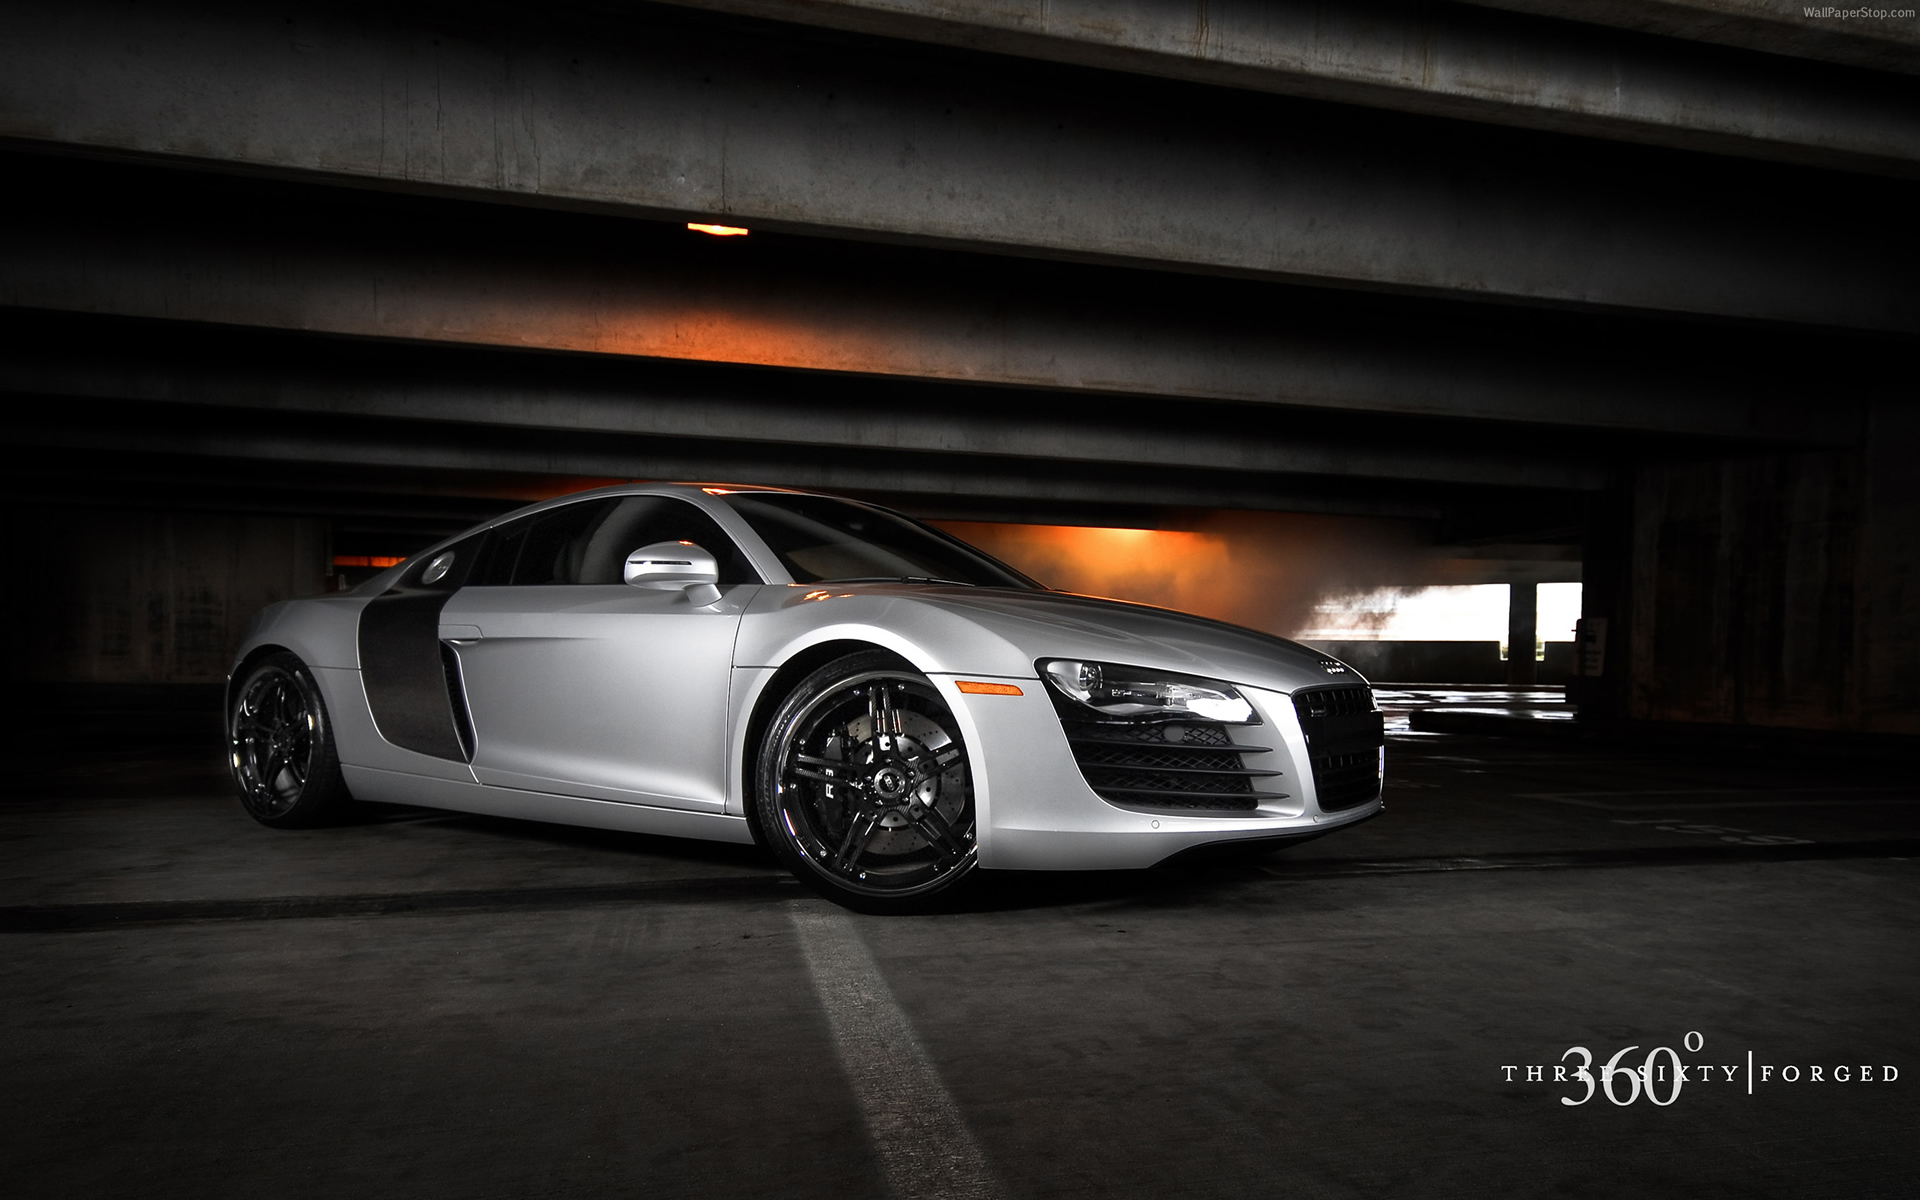 TOP HD WALLPAPERS AUDI R8 HD WALLPAPERS 1920x1200